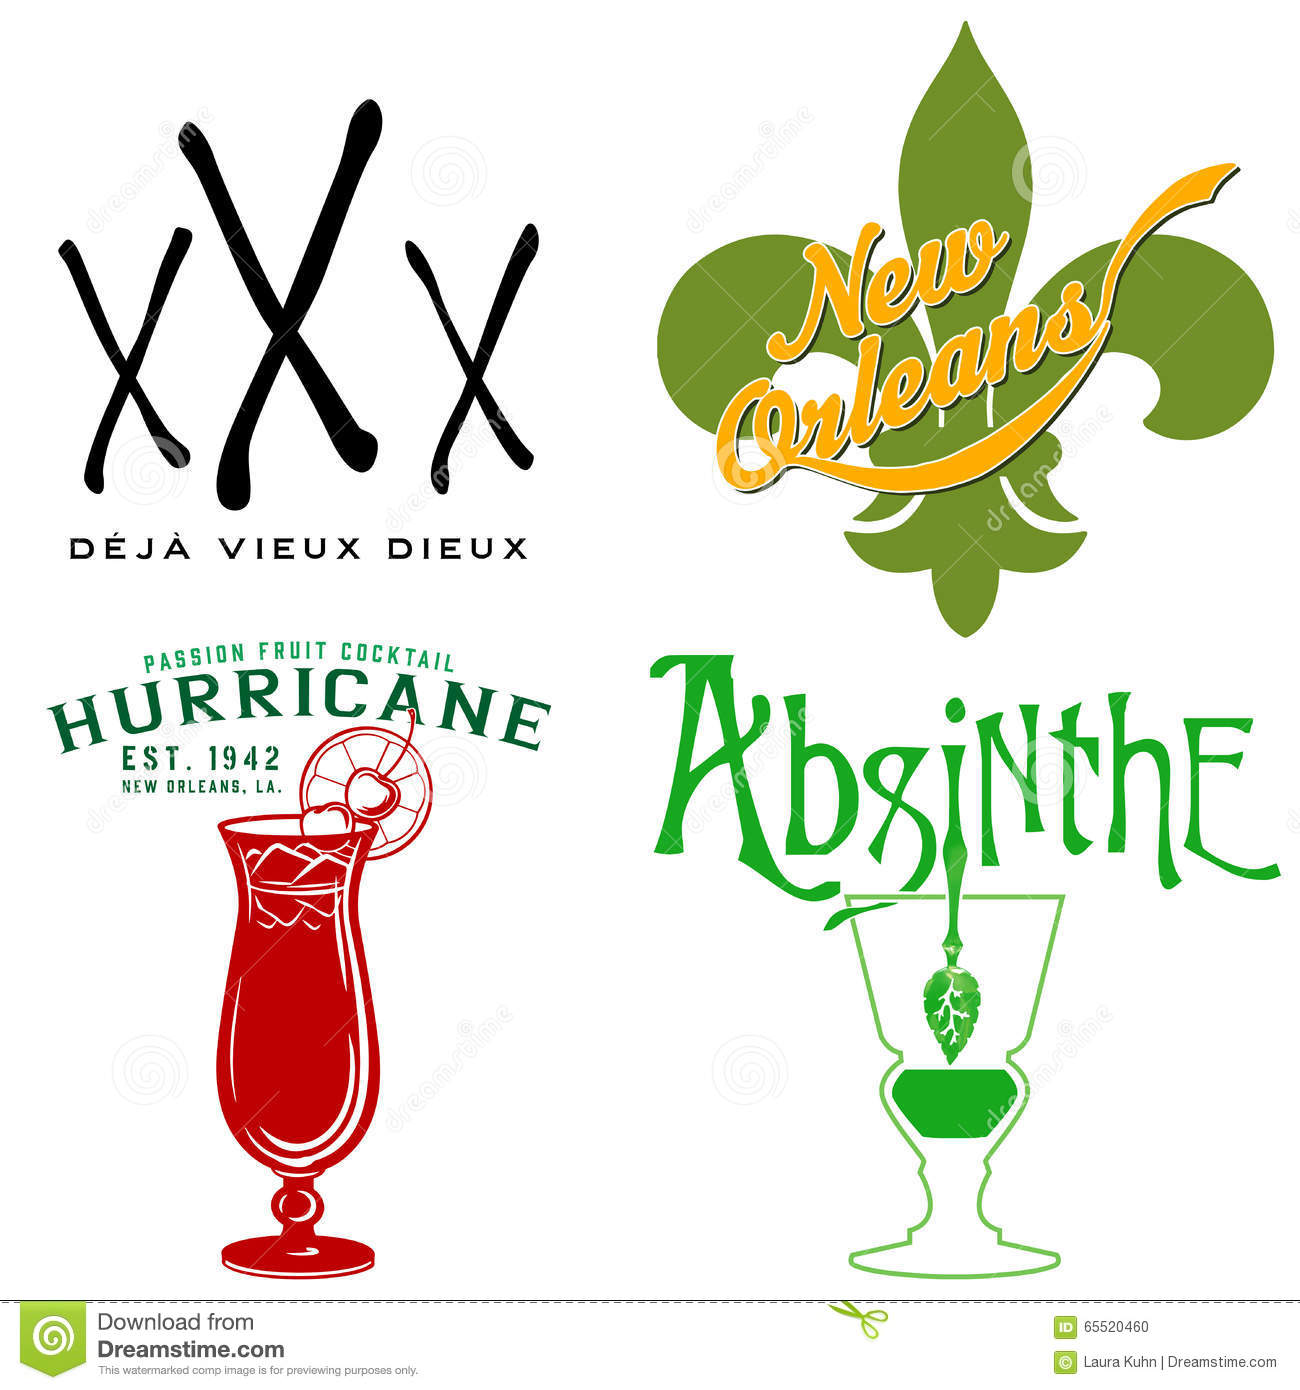 Hurricane fleur de lis symbols stock vector illustration of new orleans icon collection voodoo fleur de lis absinthe hurricane stock photo buycottarizona Images